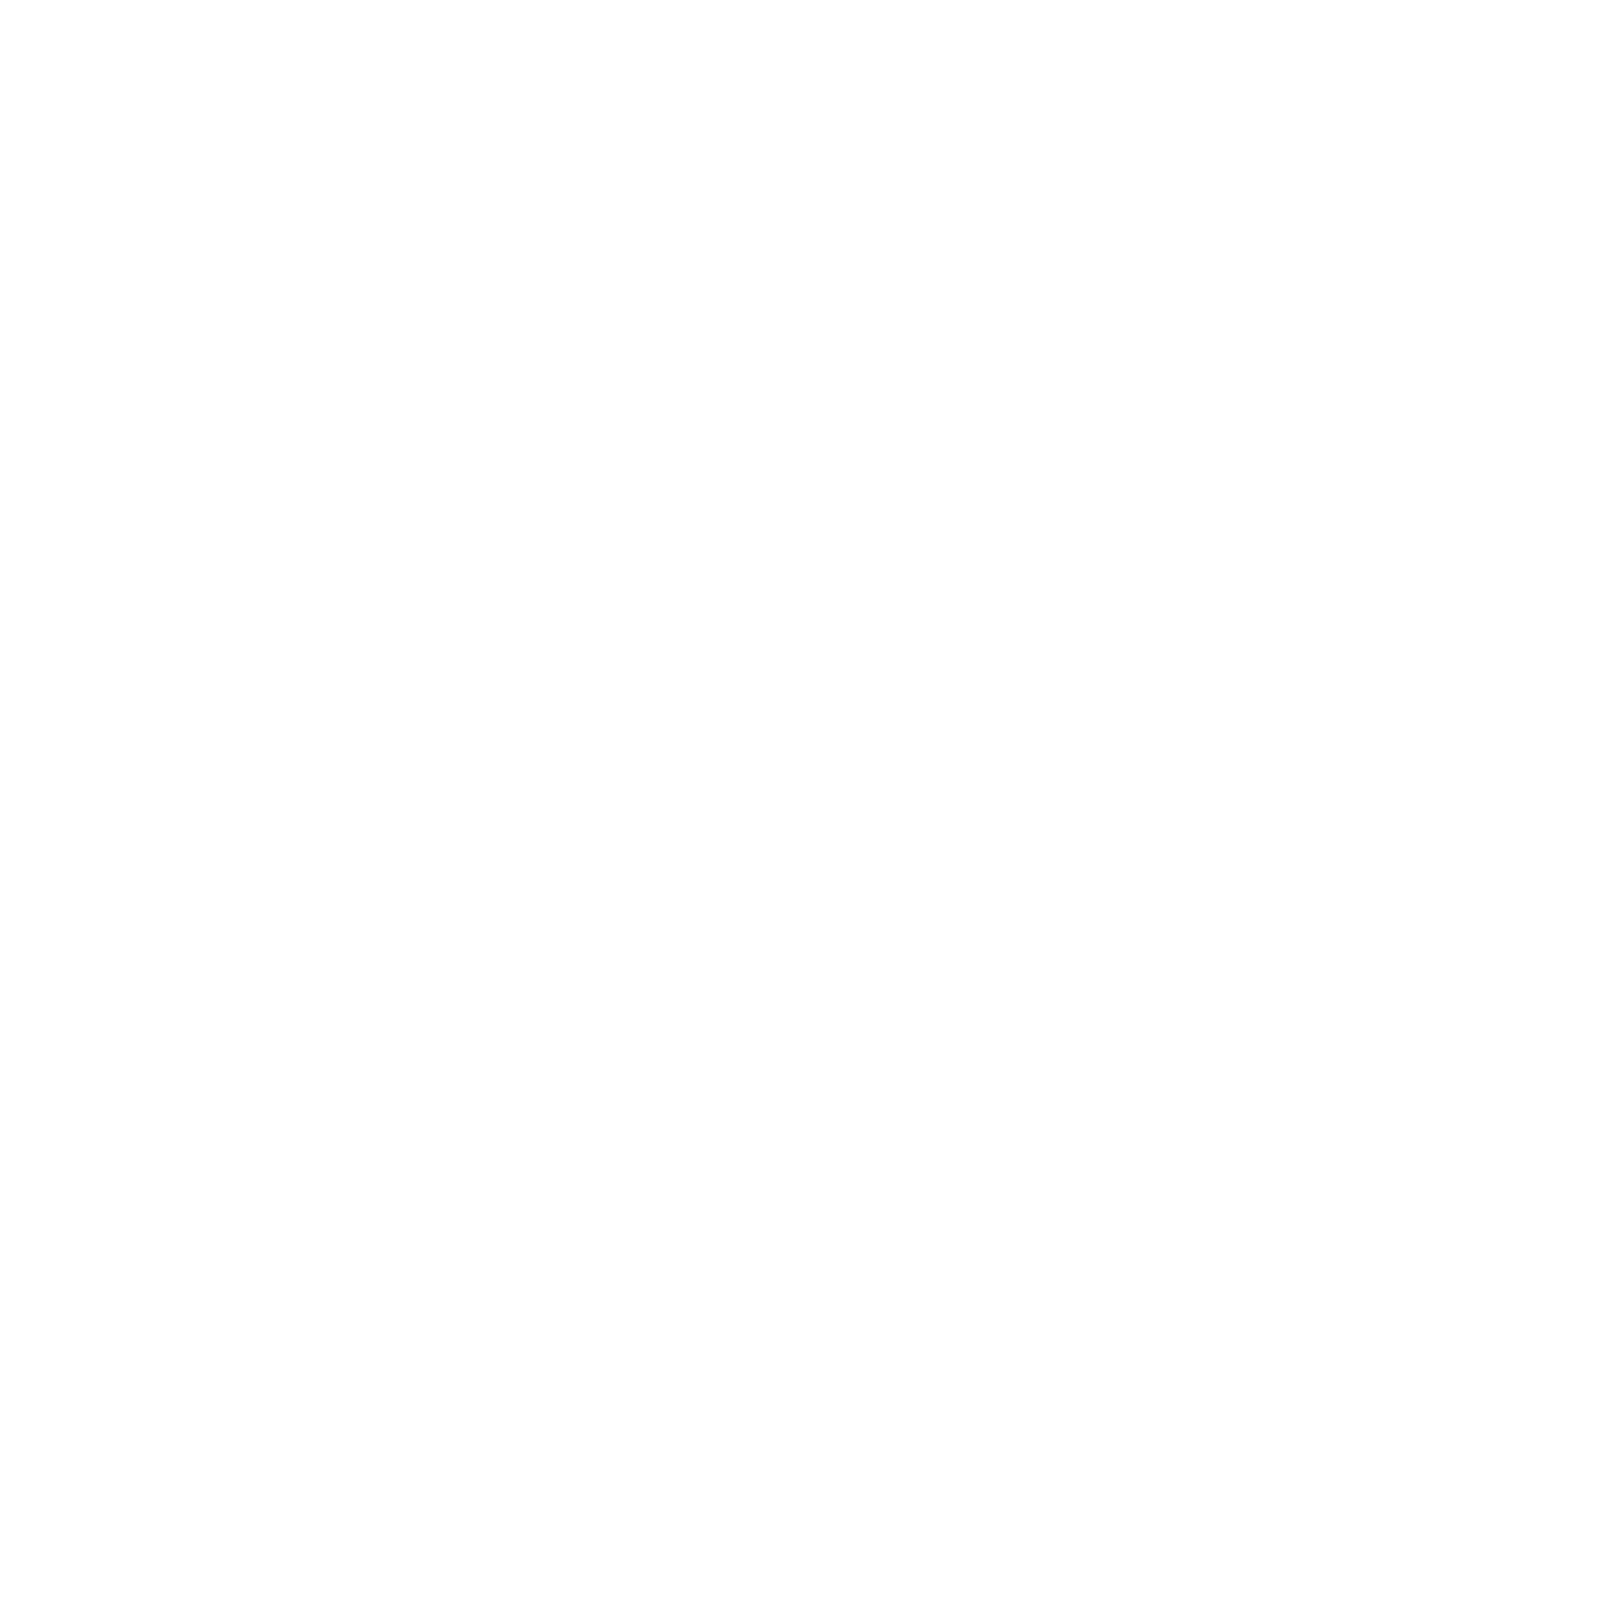 canon-project-logo